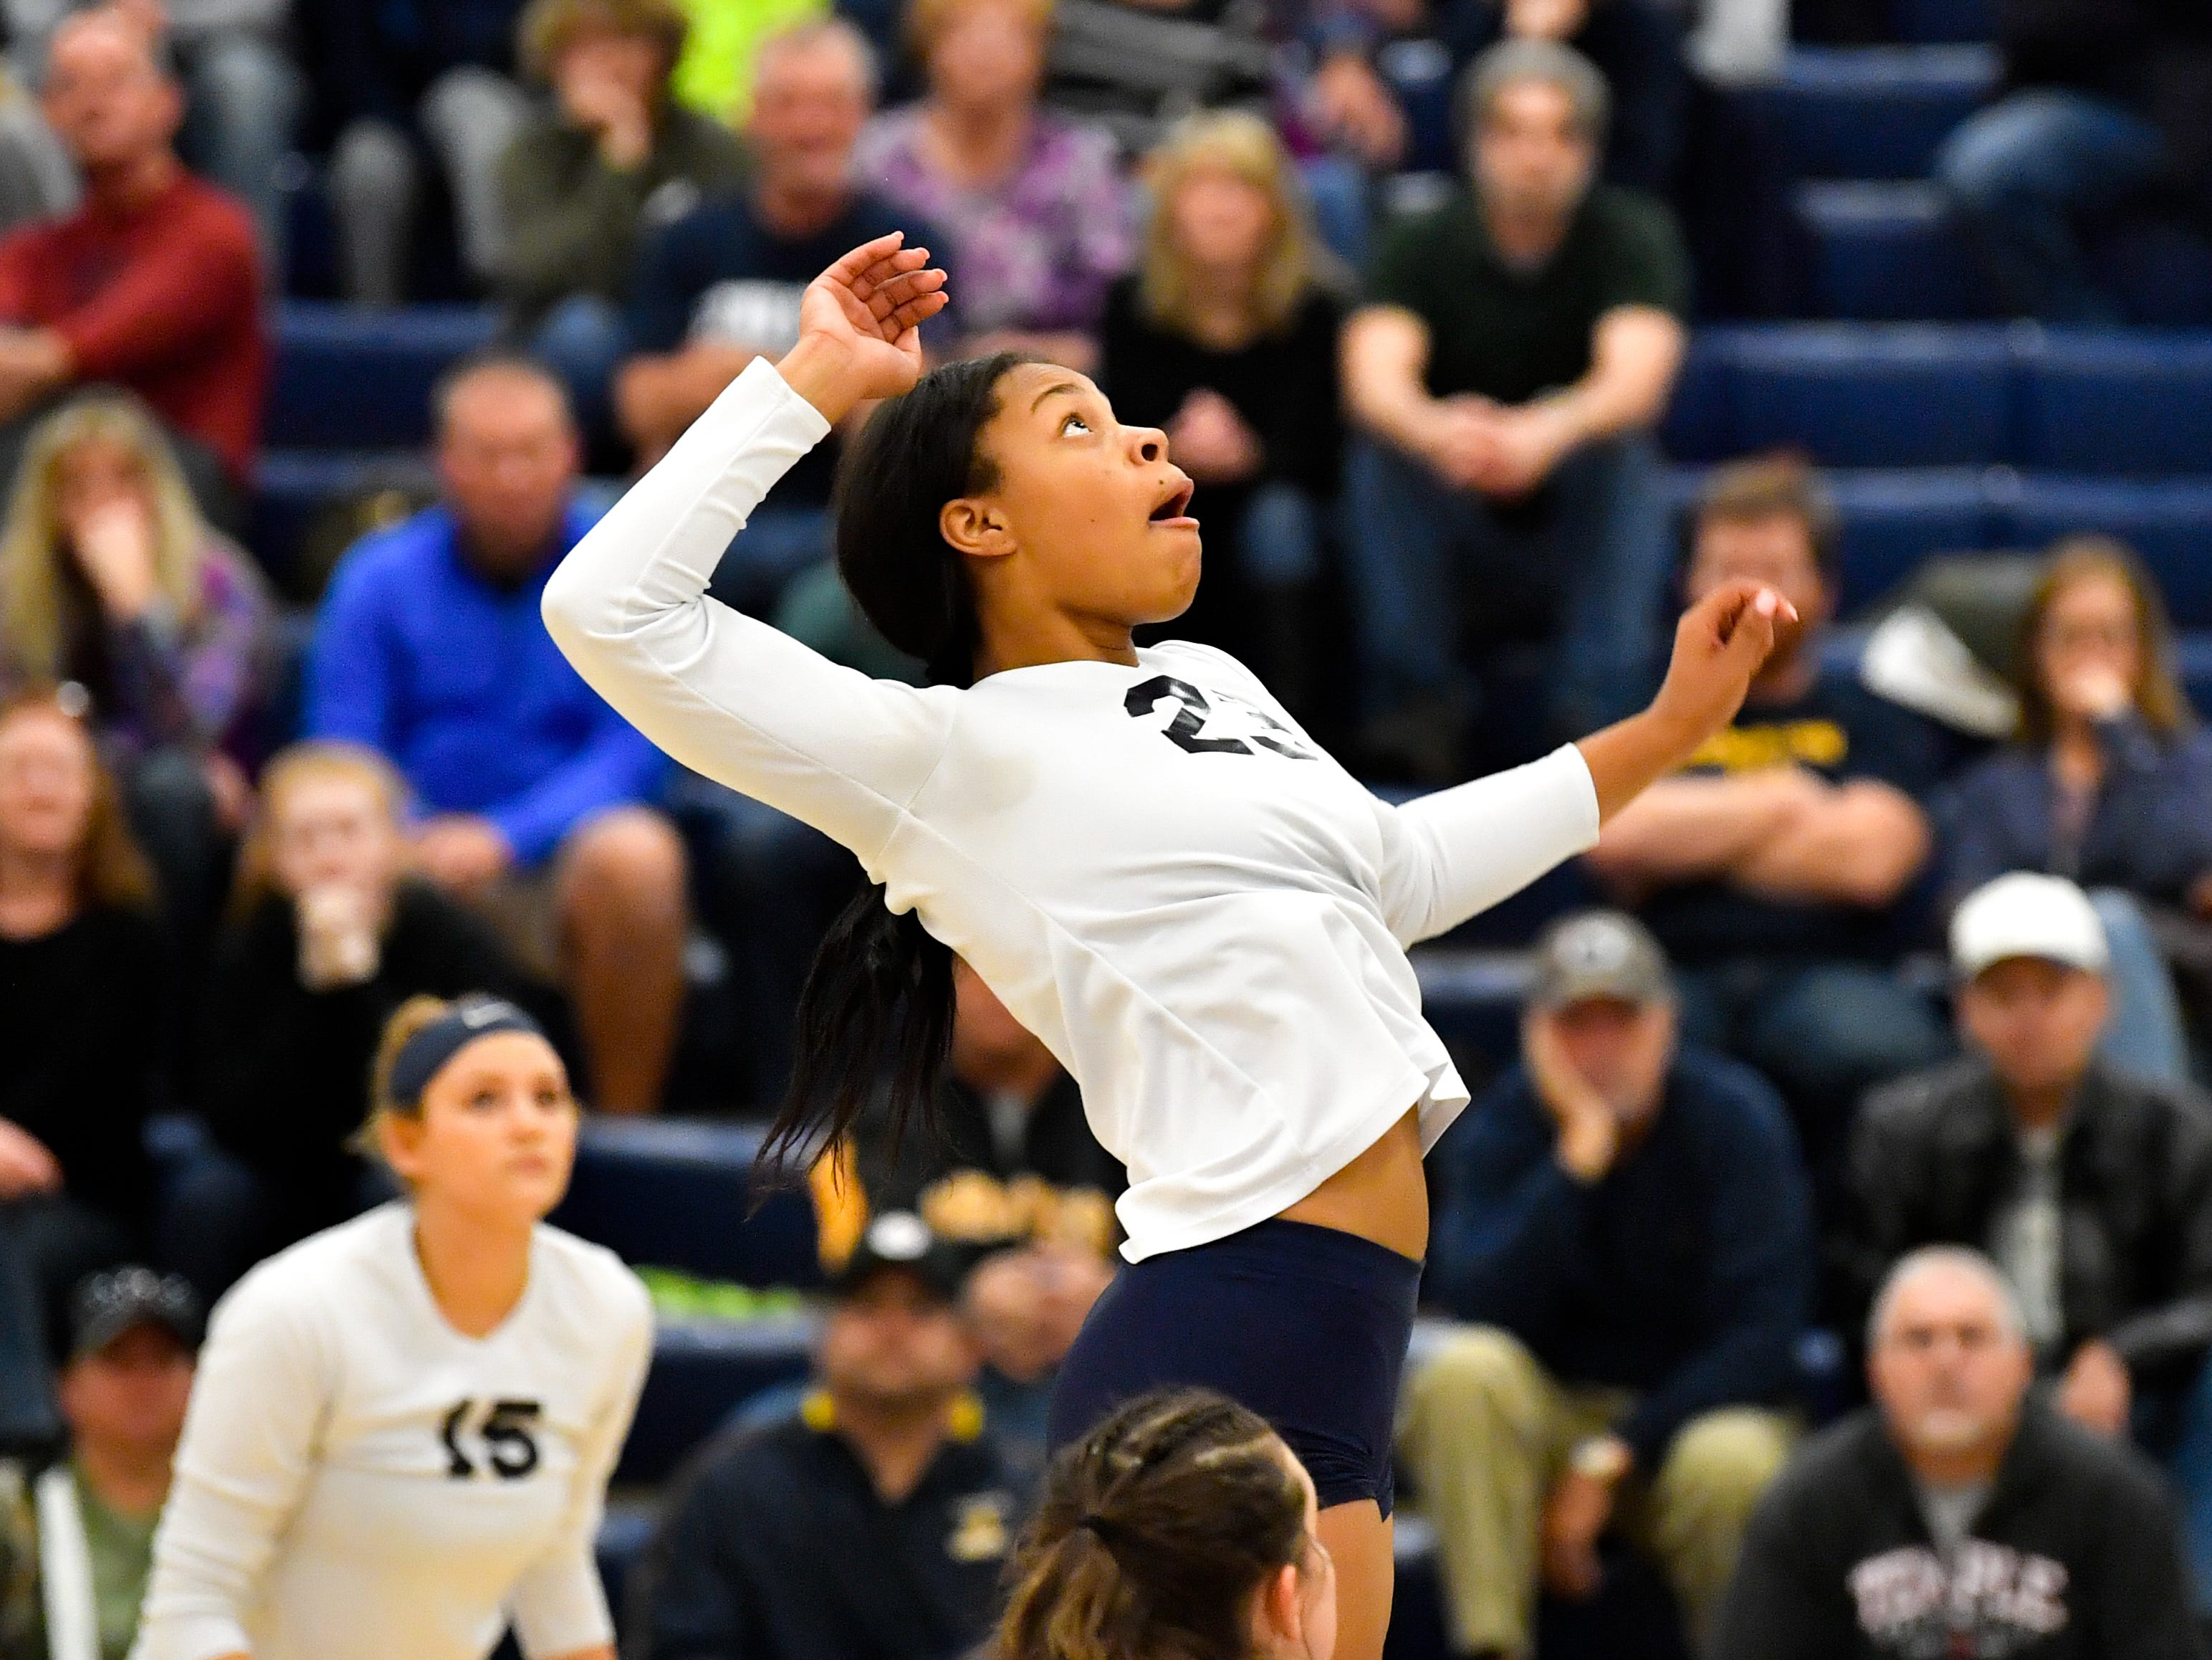 Alayna Harris (23) of West York rises up for the spike during the District 3 Class 3A girls' volleyball quarterfinals between West York and Eastern York at West York High School, October 30, 2018. The Bulldogs defeated the Golden Knights 3-0.